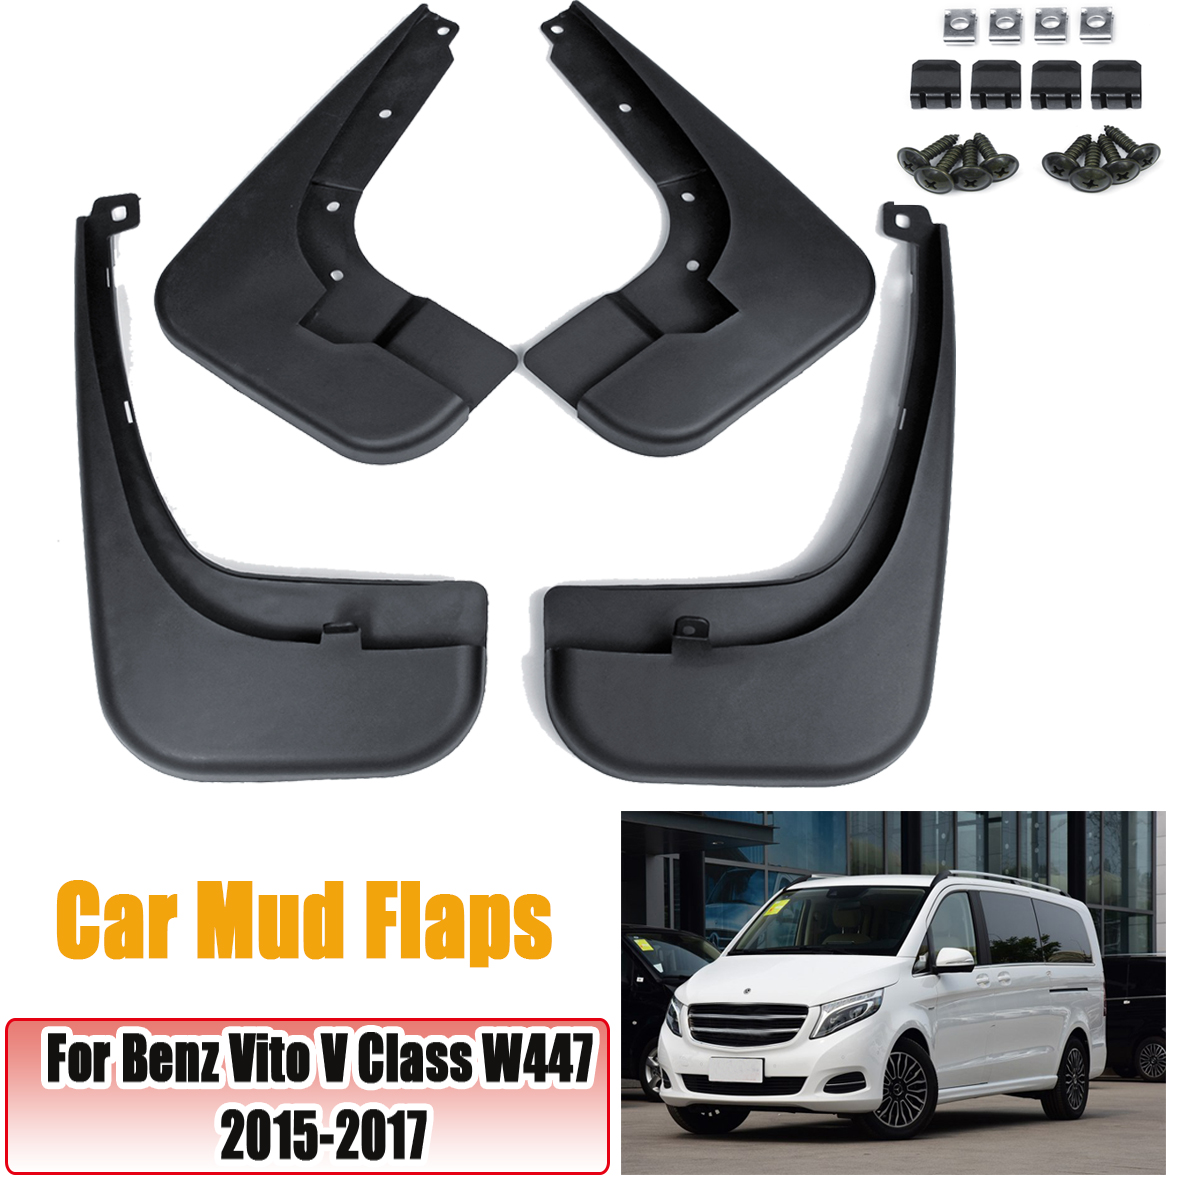 Car Front Rear Mud Flaps For Benz Vito V Class W447 2015 2016 2017 For Fender